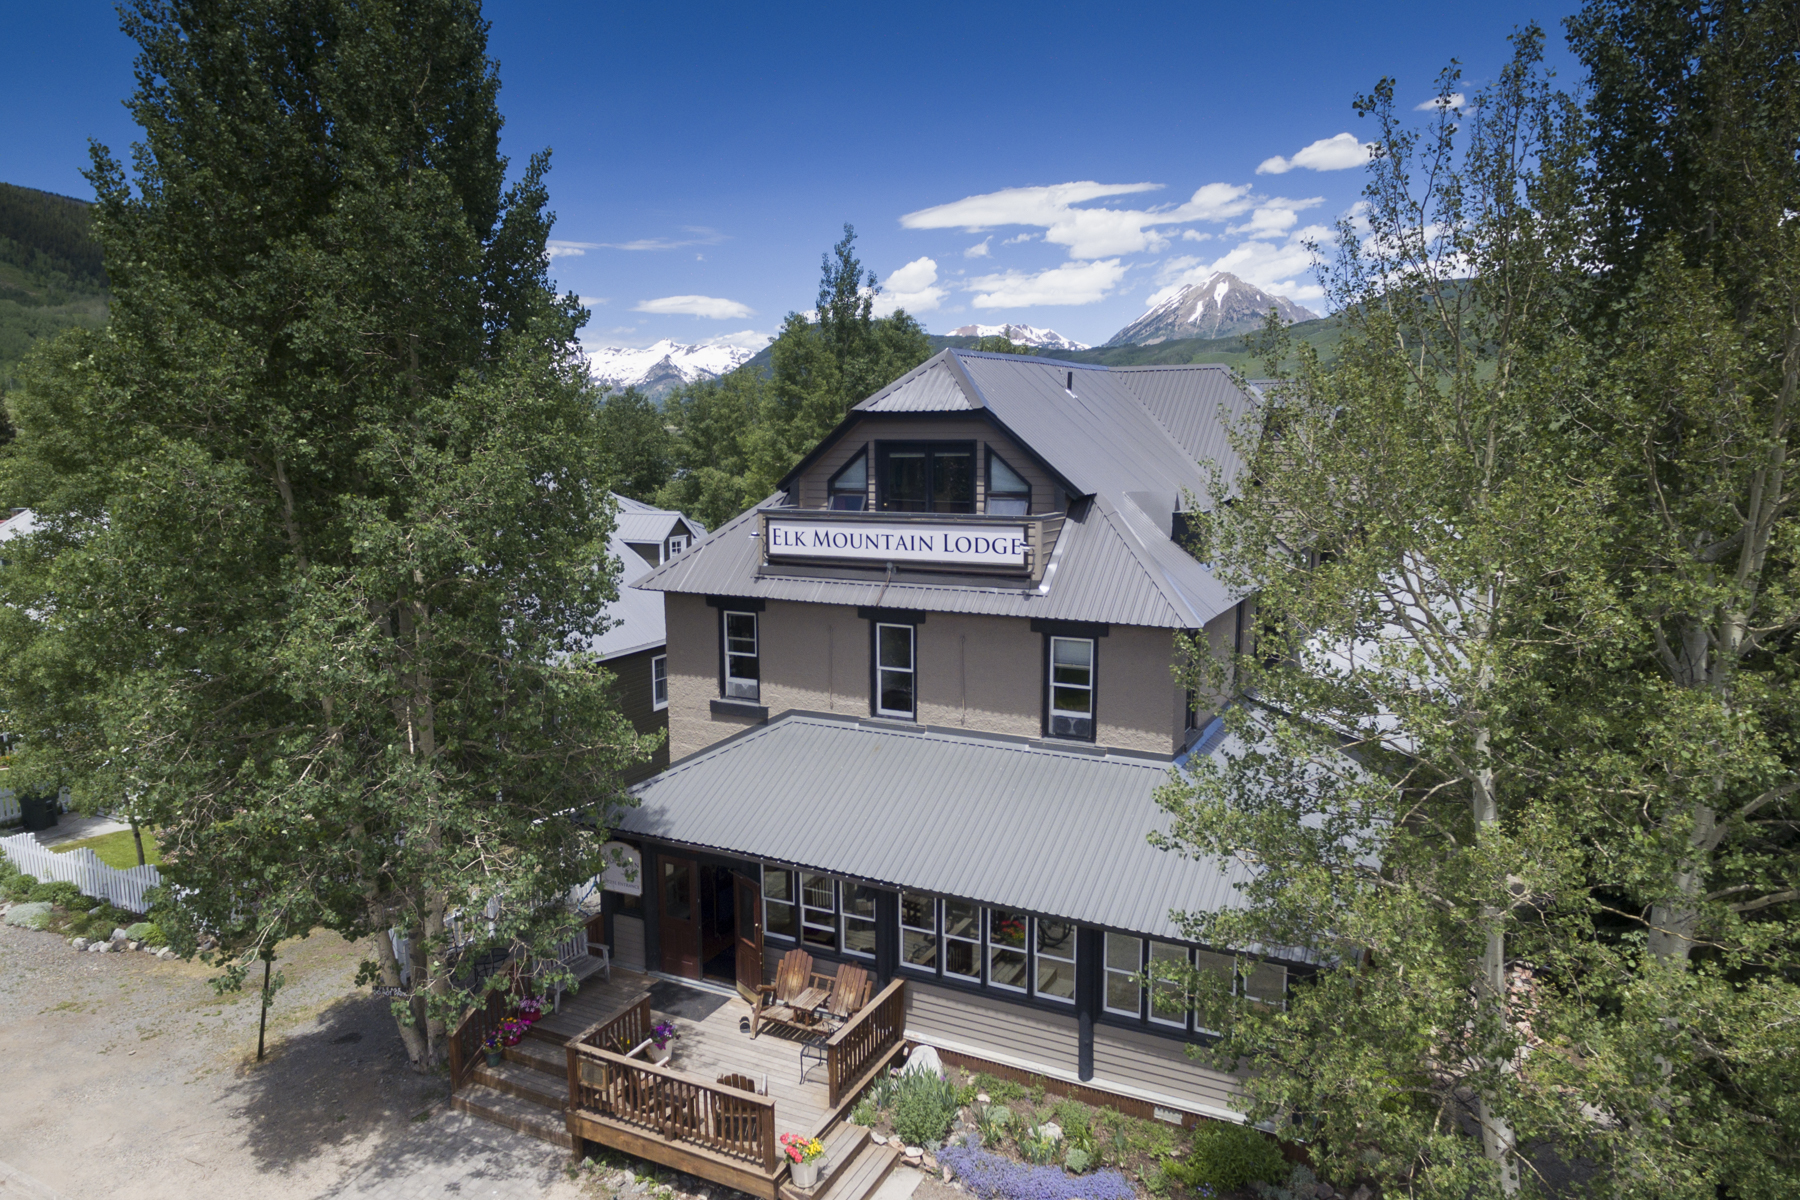 Single Family Home for Sale at The Elk Mountain Lodge 129 Gothic Avenue Crested Butte, Colorado 81224 United States